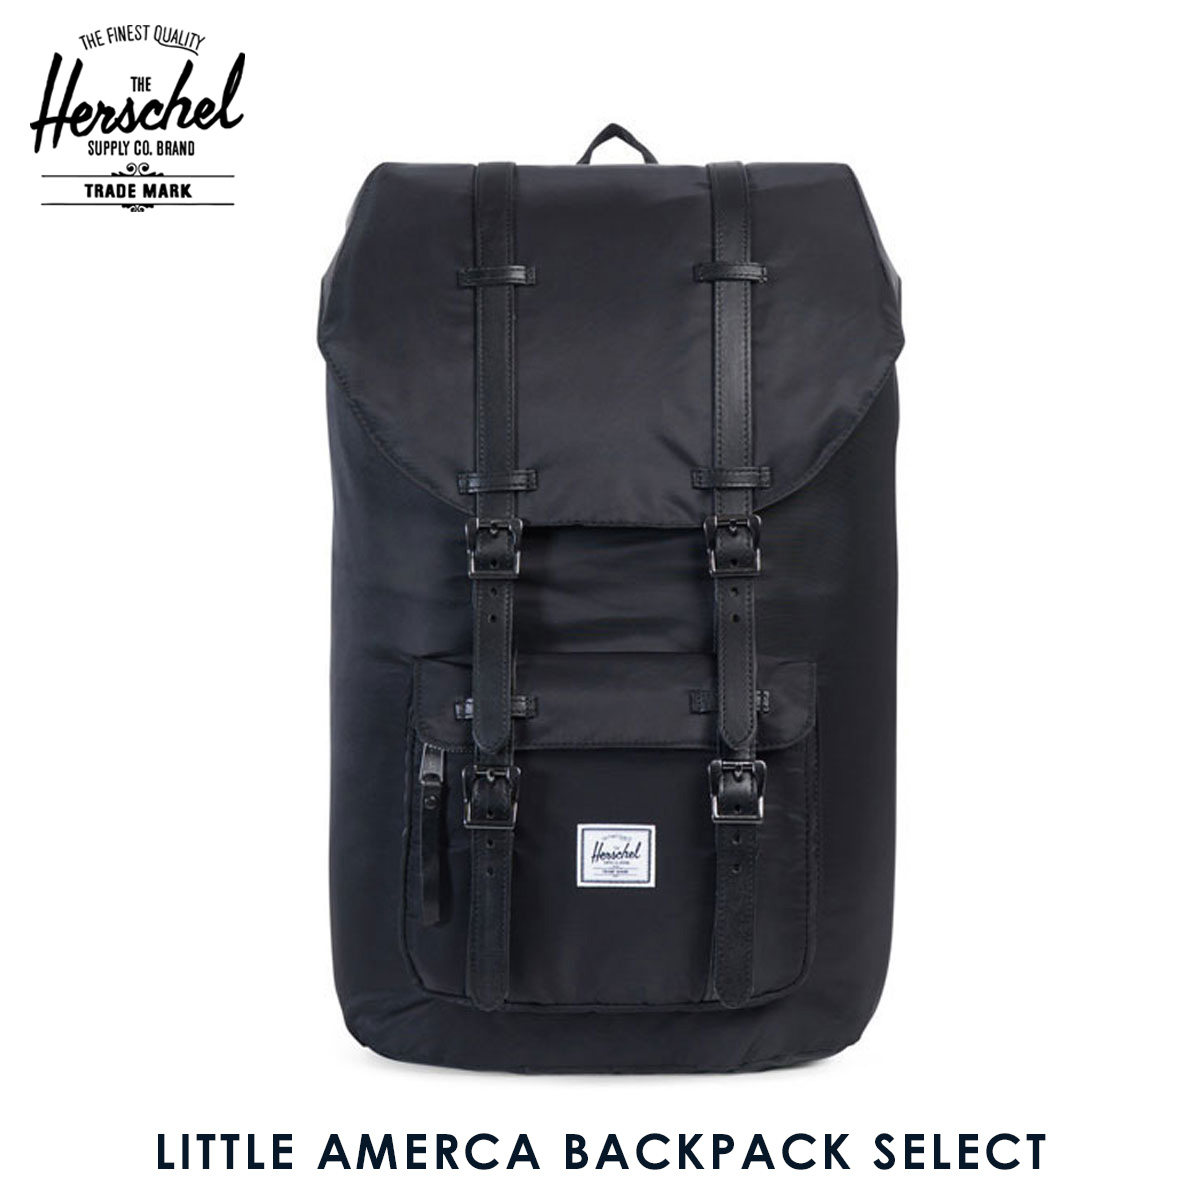 1c6f0d143c7 Herschel Herschel Supply regular sale shop bag rucksack LITTLE AMERCA  BACKPACK SELECT 10014-00949-OS BLACK BLACK DYED VEGGIE TAN LEATHER  20P05Nov16